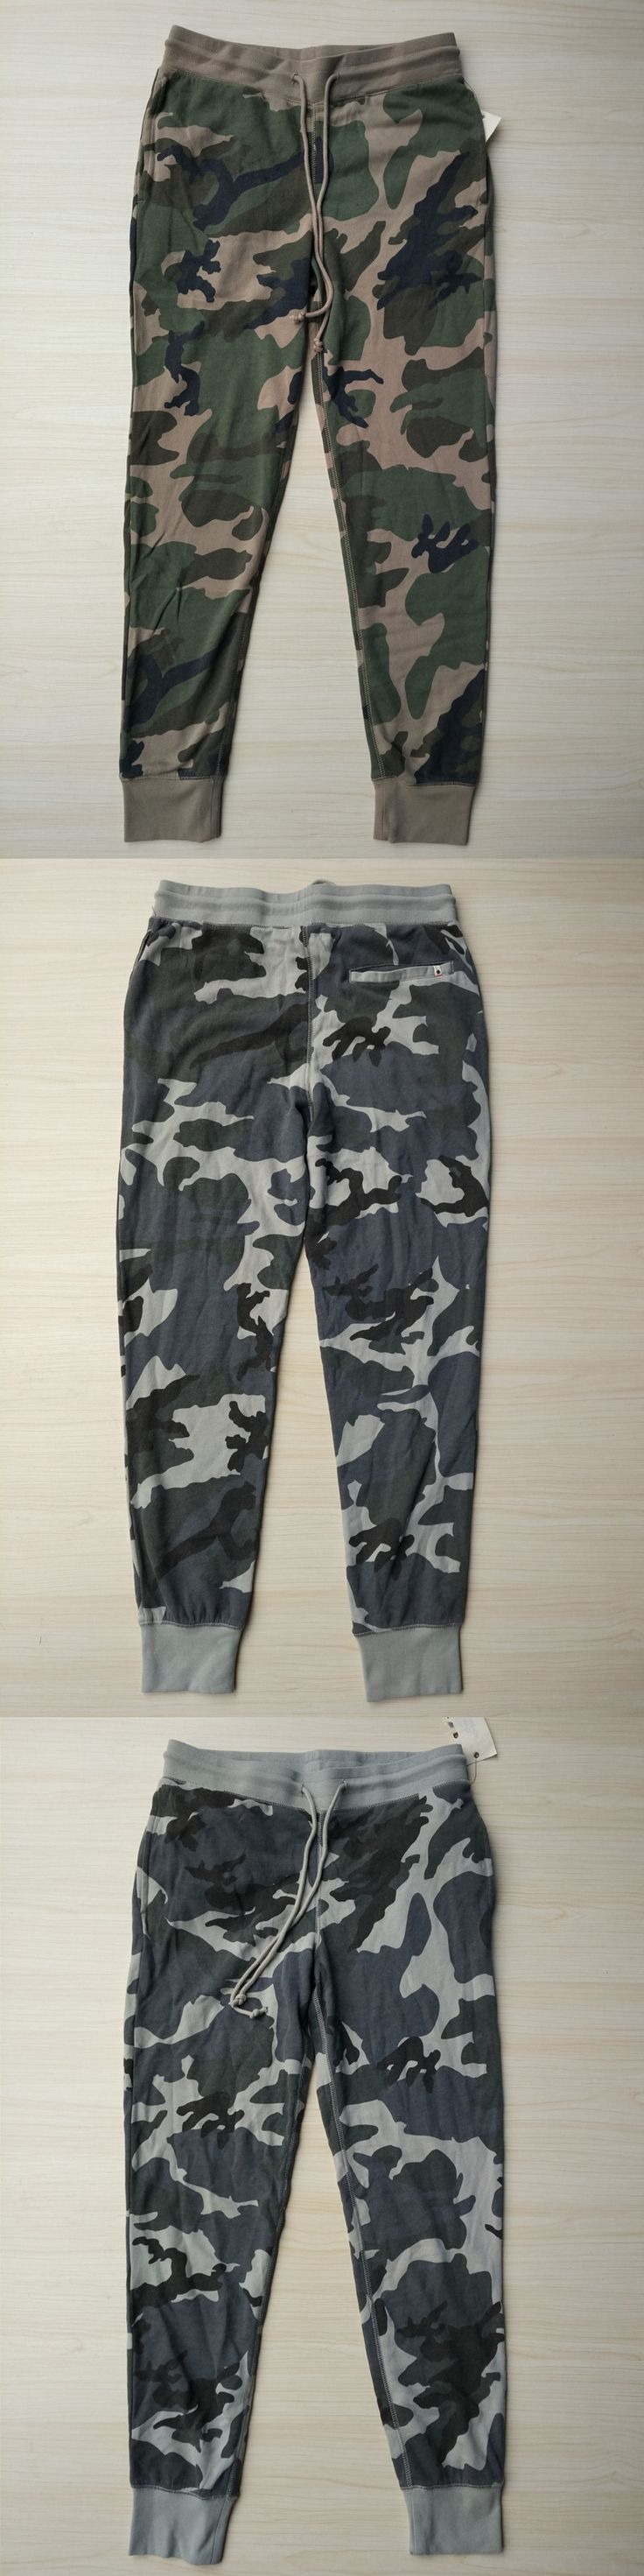 Men's Camouflage Print Fleece Pants USA Size S-XXL (Not Thick French Terry)